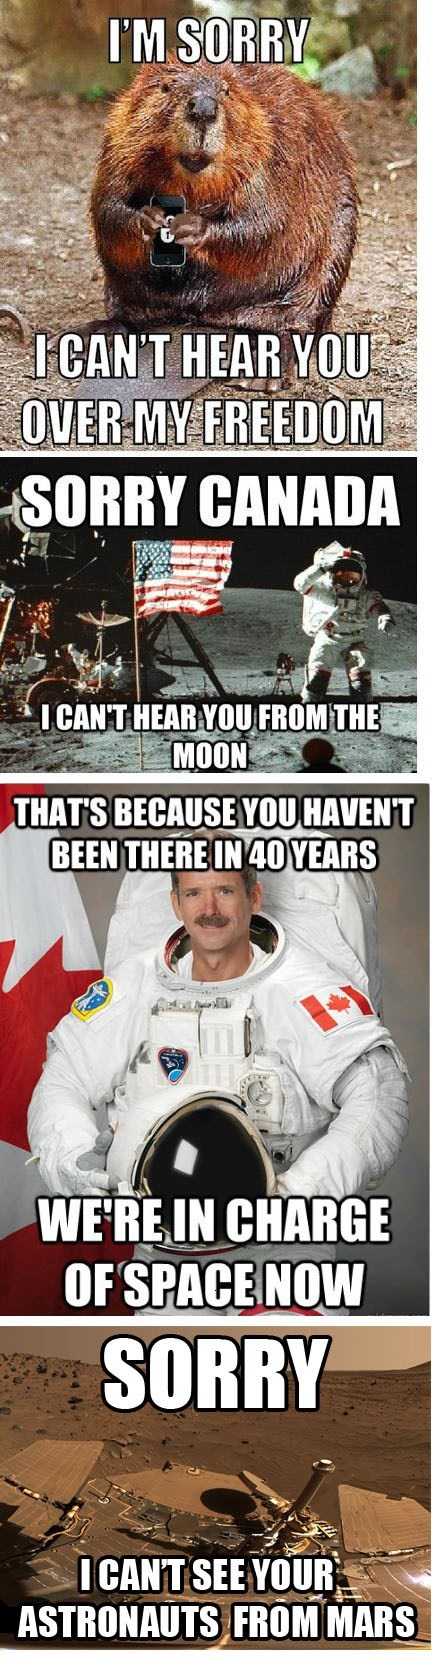 Canada,nasa,chris hadfield,the moon,Astronomy,space